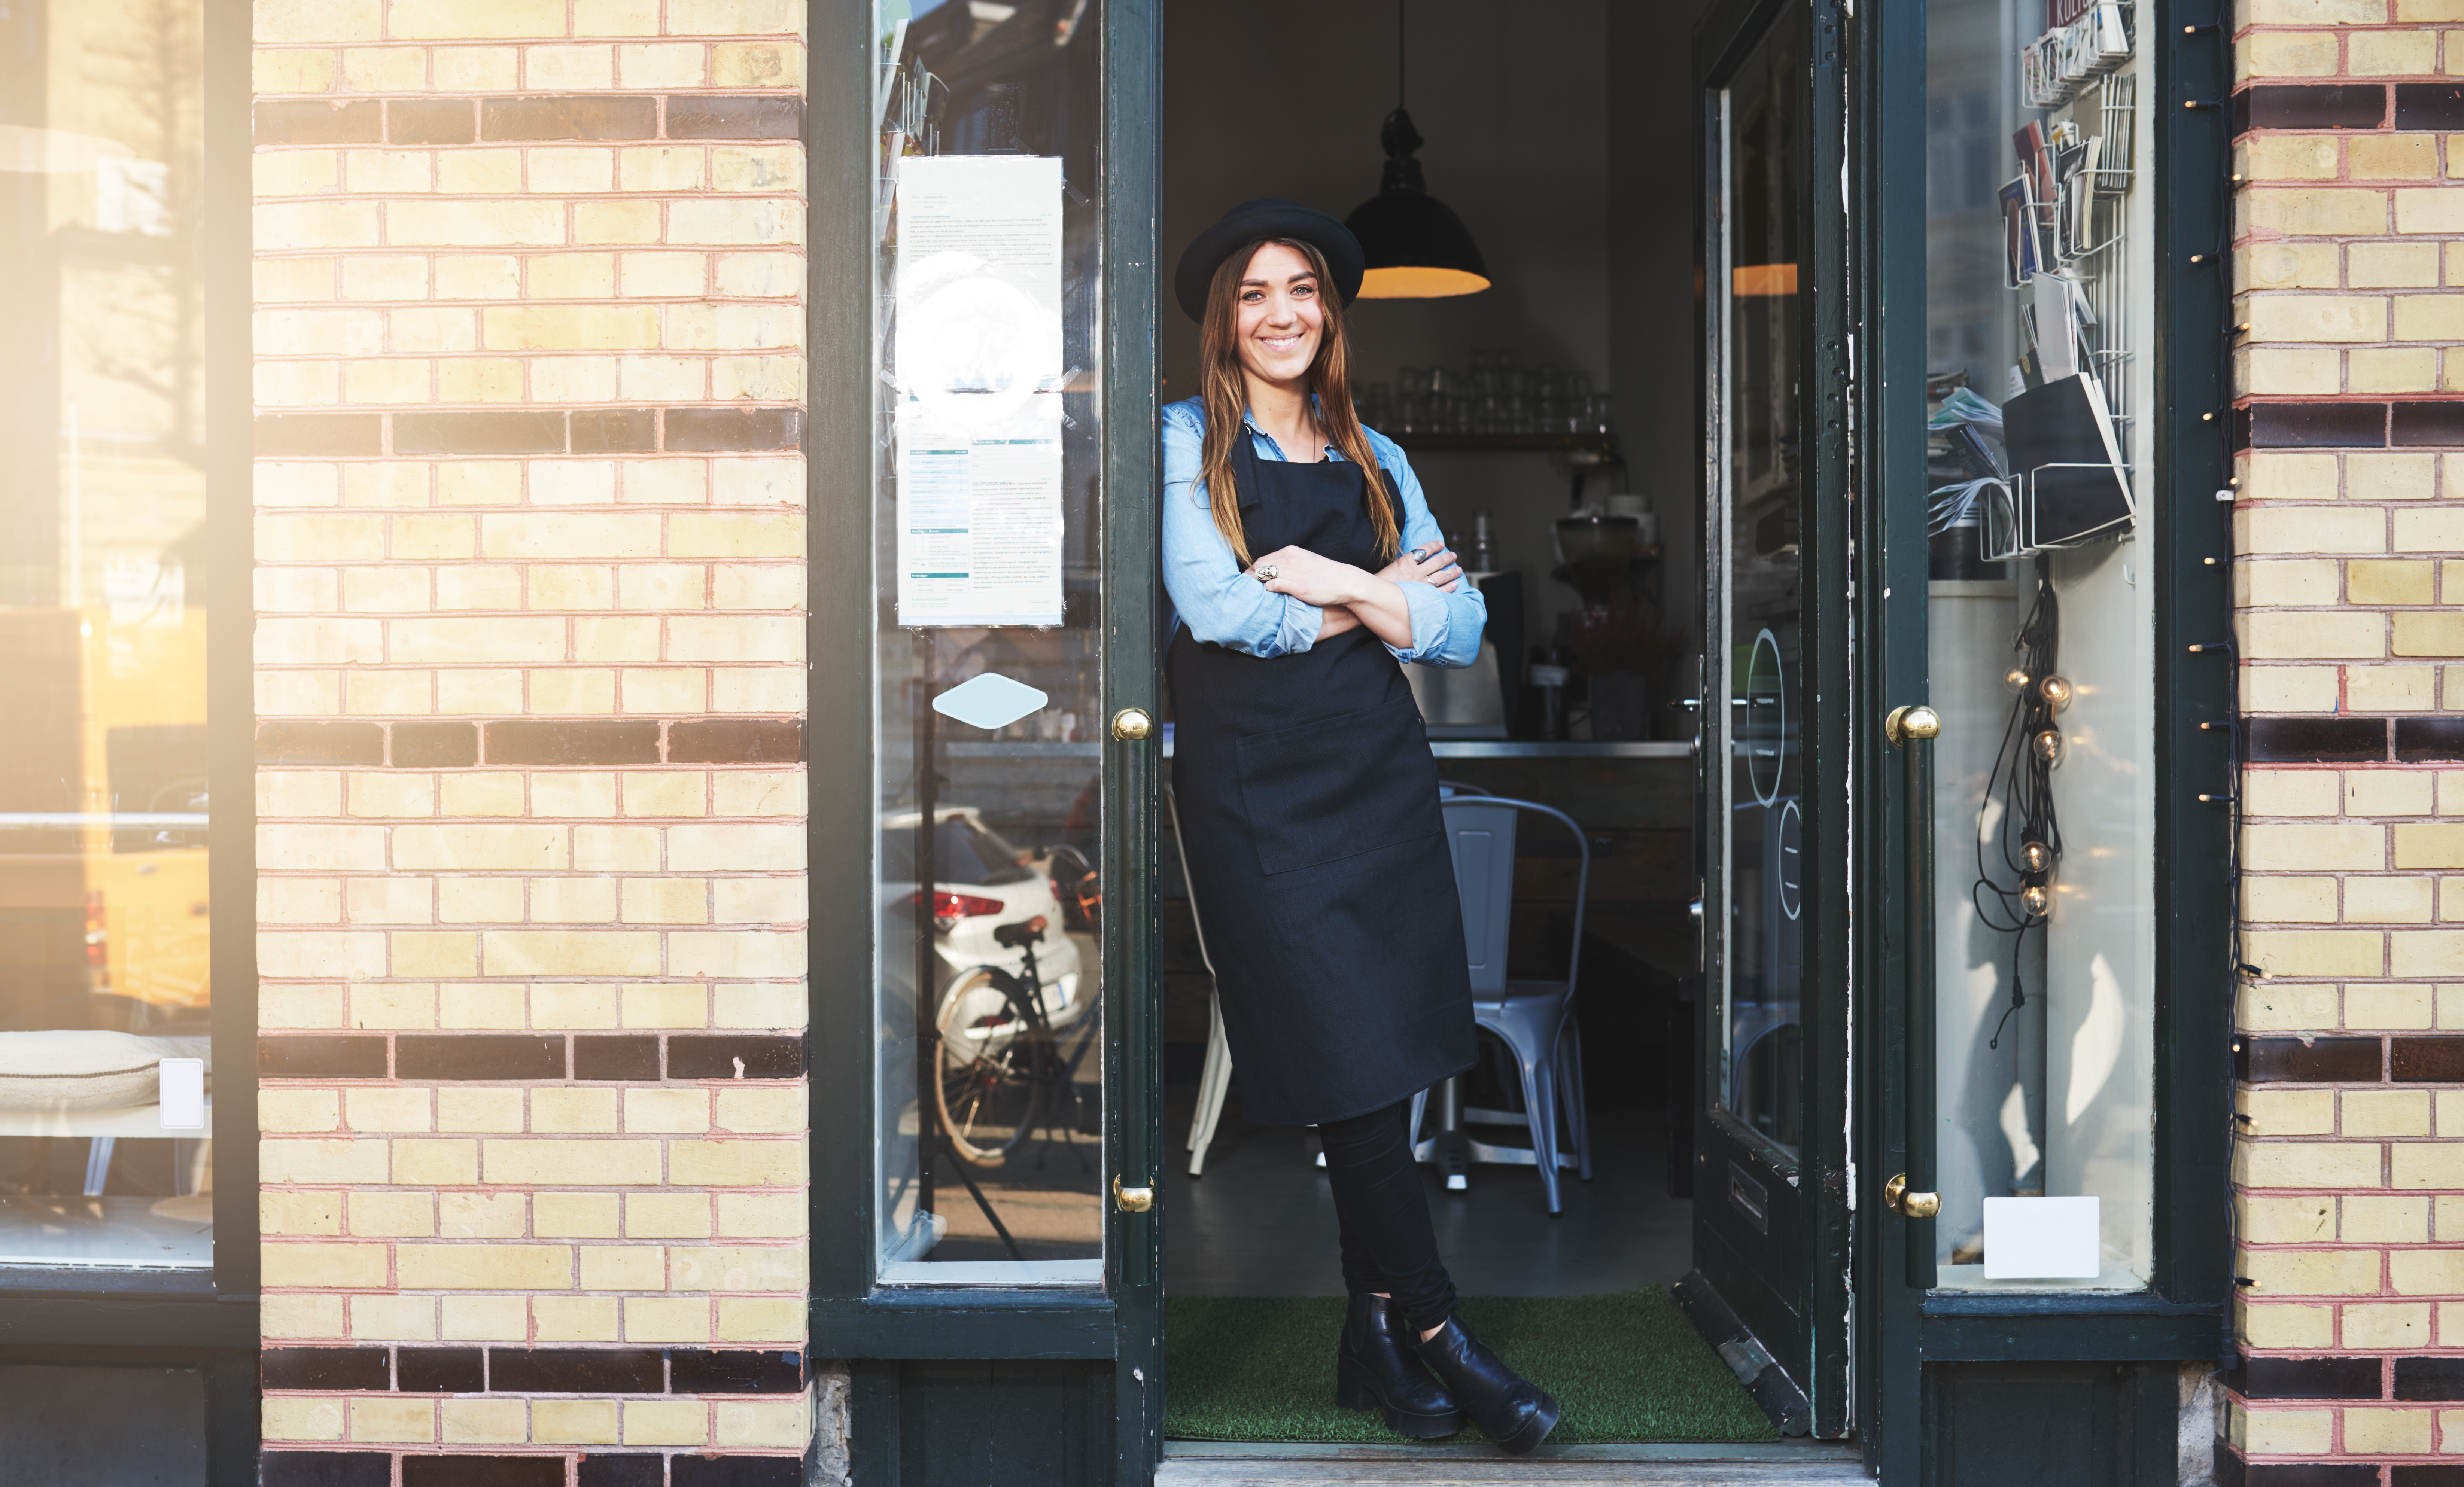 Young business woman leaning against doorway